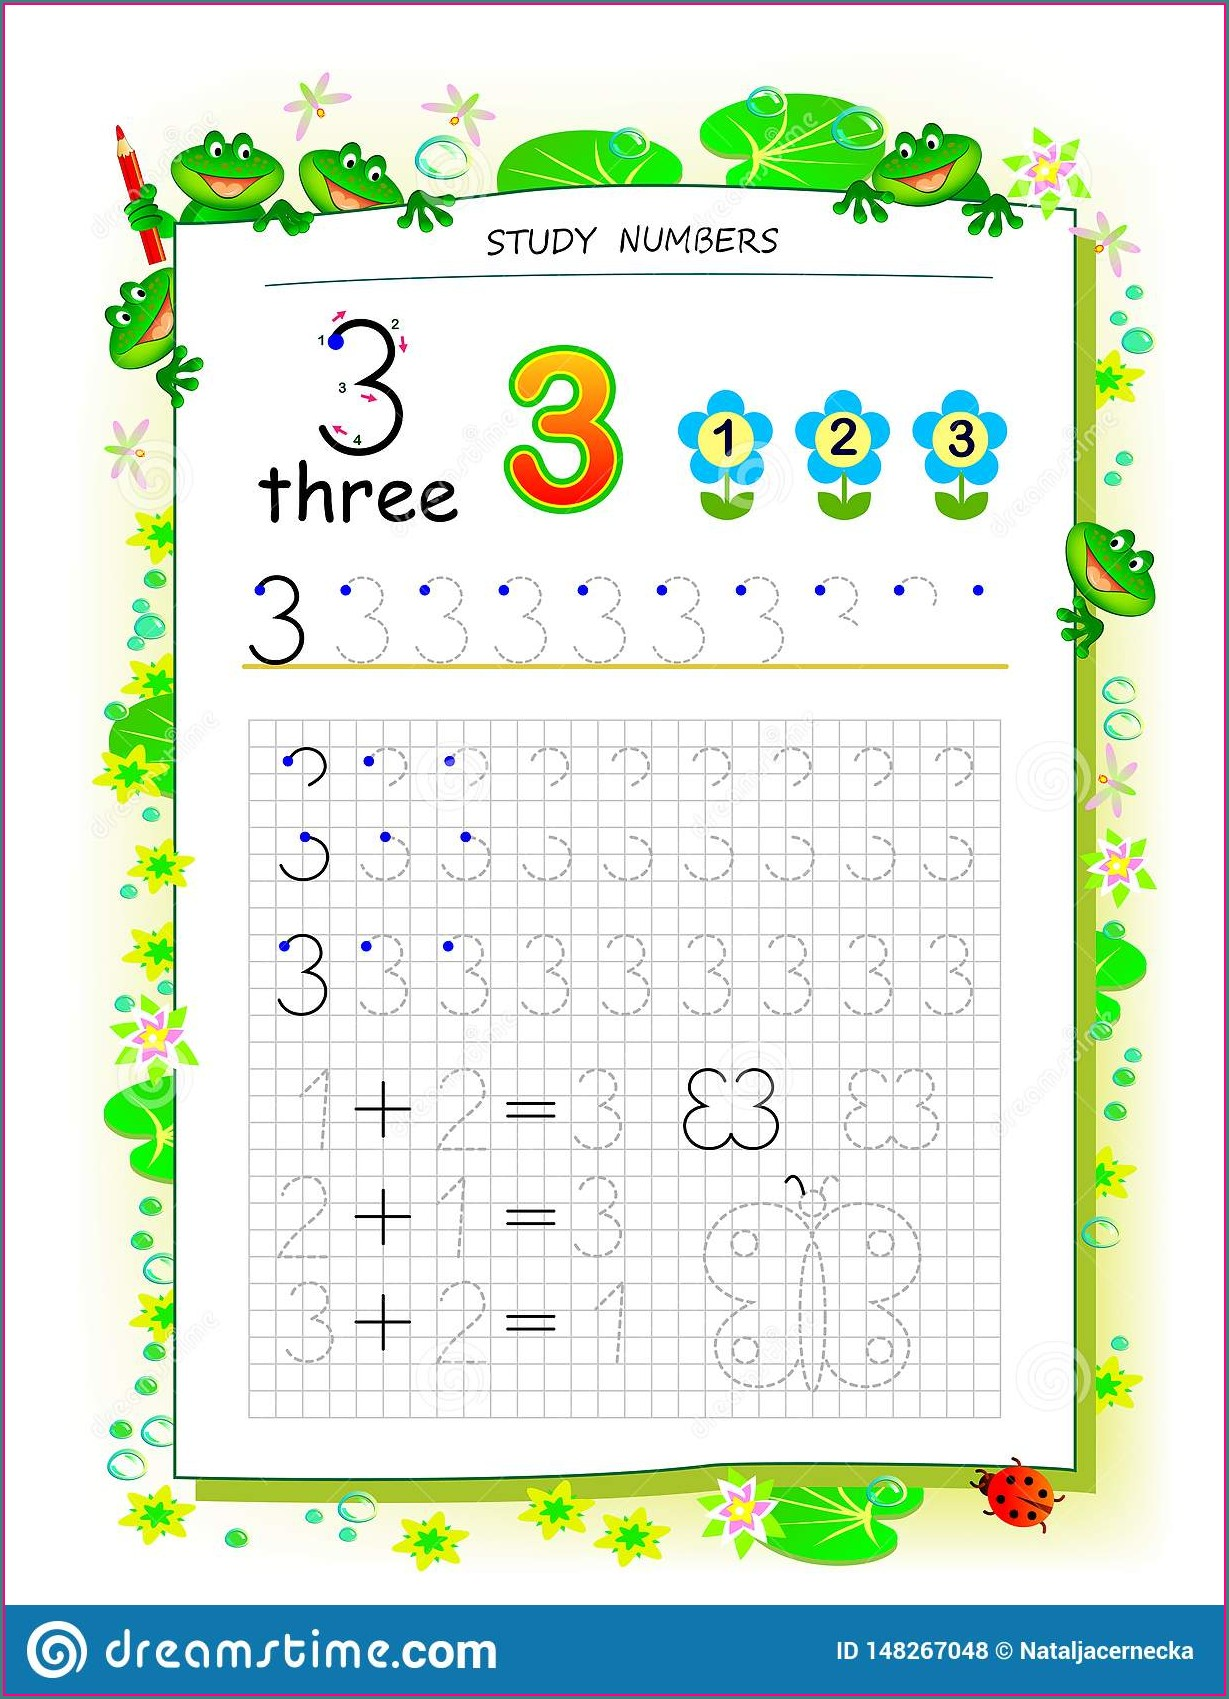 Worksheet On Number 3